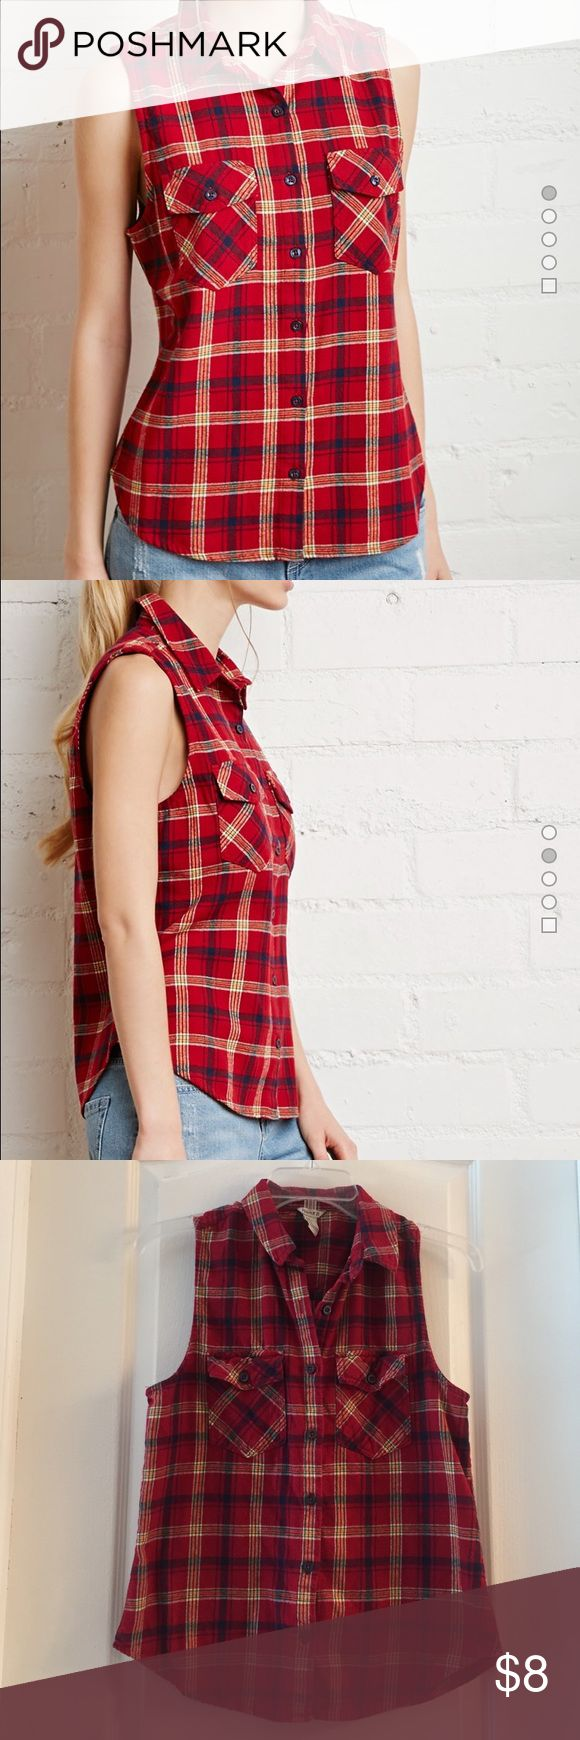 Red plaid sleeveless button down top Red plaid sleeveless, button down top. Flannel material. Perfect for fall with cute moto jacket and booties!👍🏼 🍂price is firm🍂 Forever 21 Tops Tank Tops